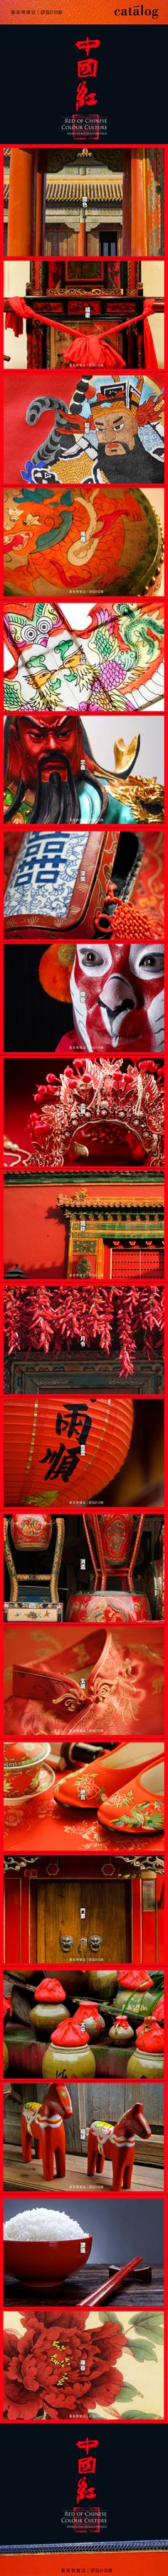 中國紅 | Red of Chinese Colour Culture